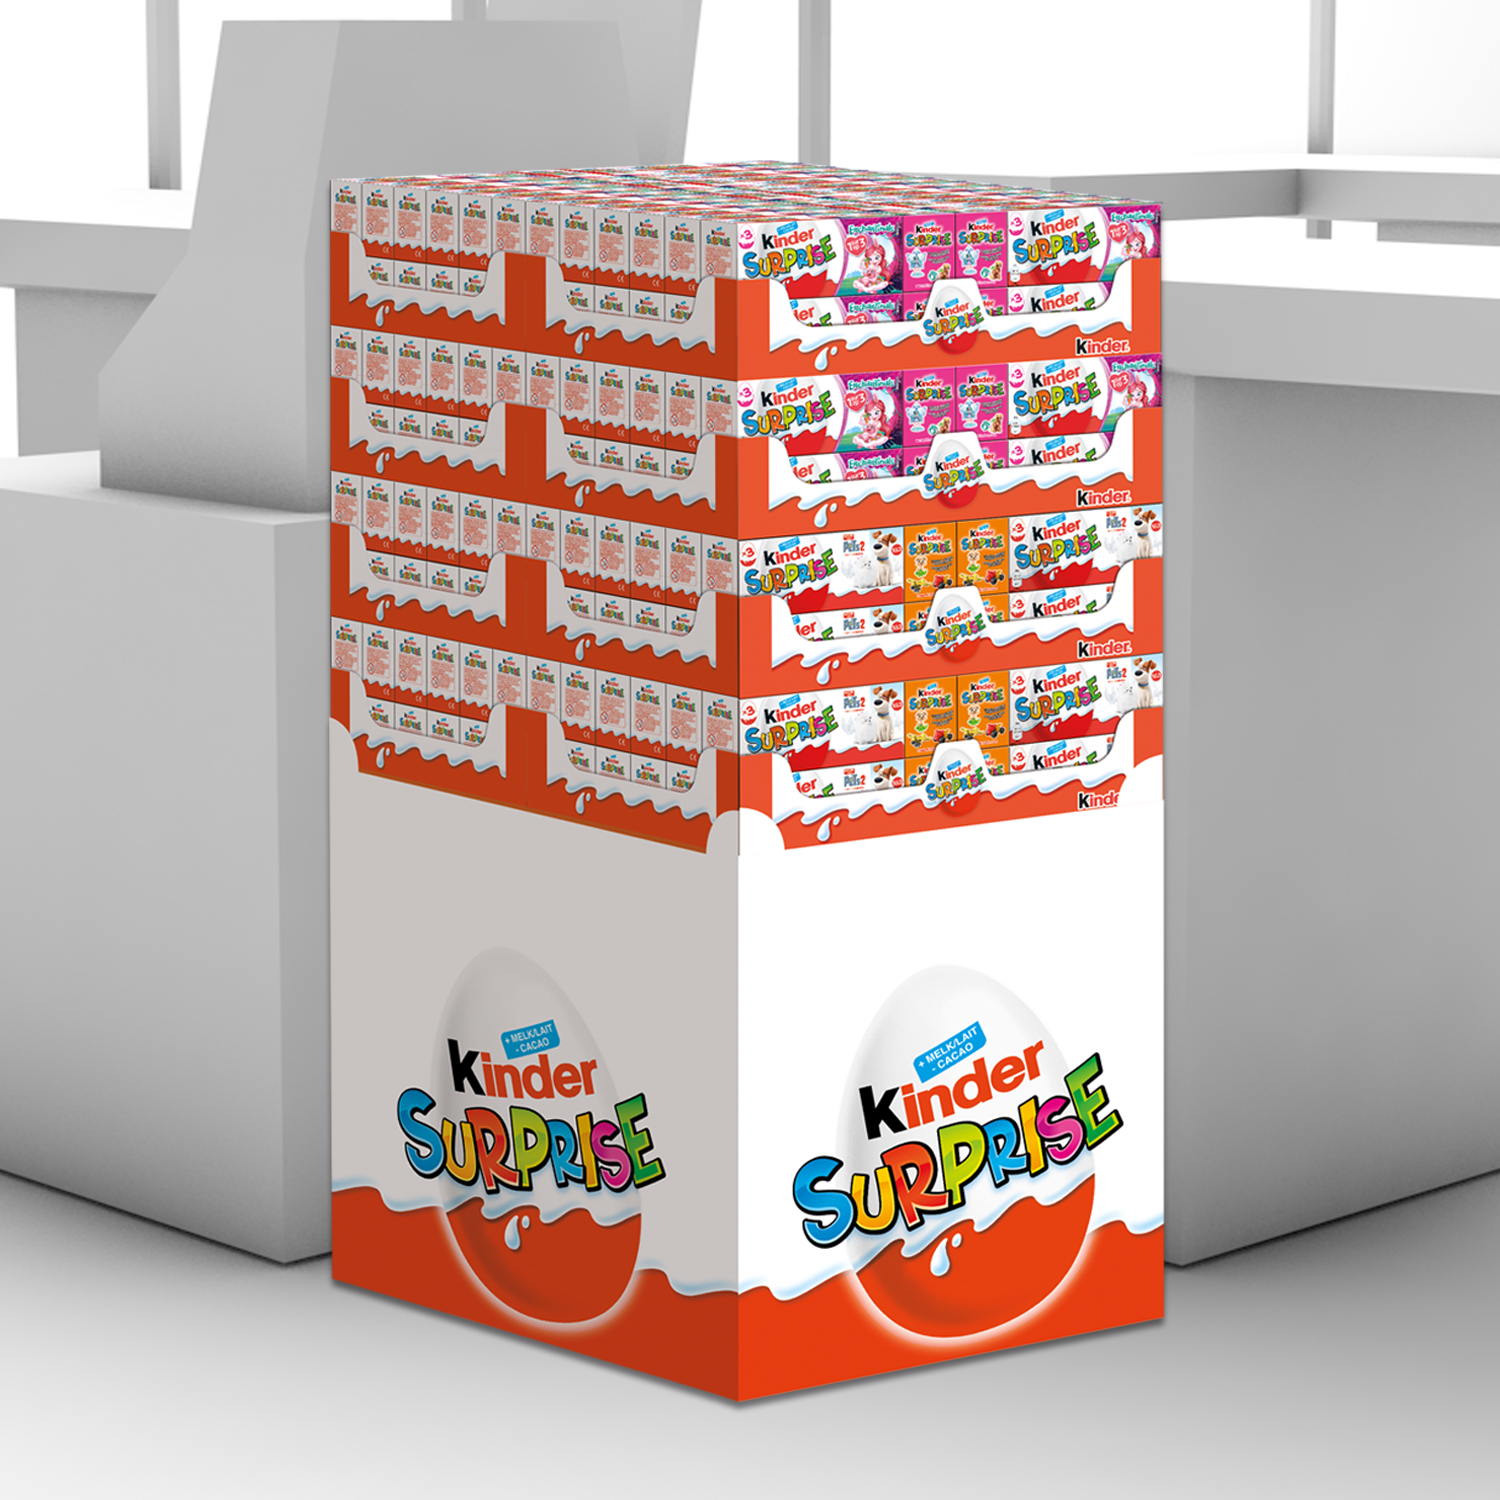 Display Kinder Surprise T3 FBE